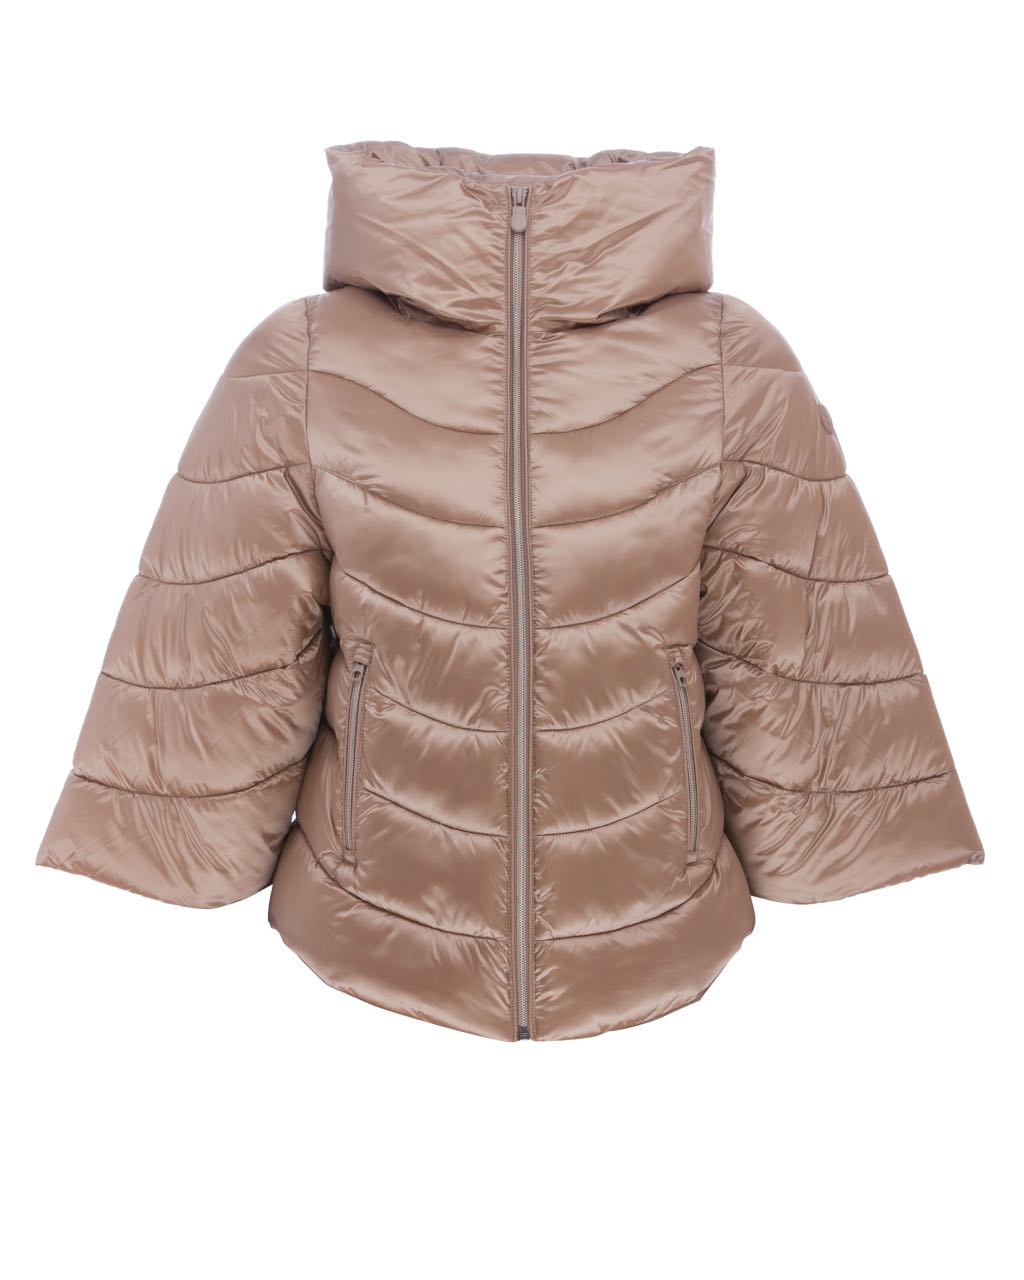 18a910bf7a82 SAVE THE DUCK Women's Hooded Jacket S3594W-IRIS5 | Buy Online ...